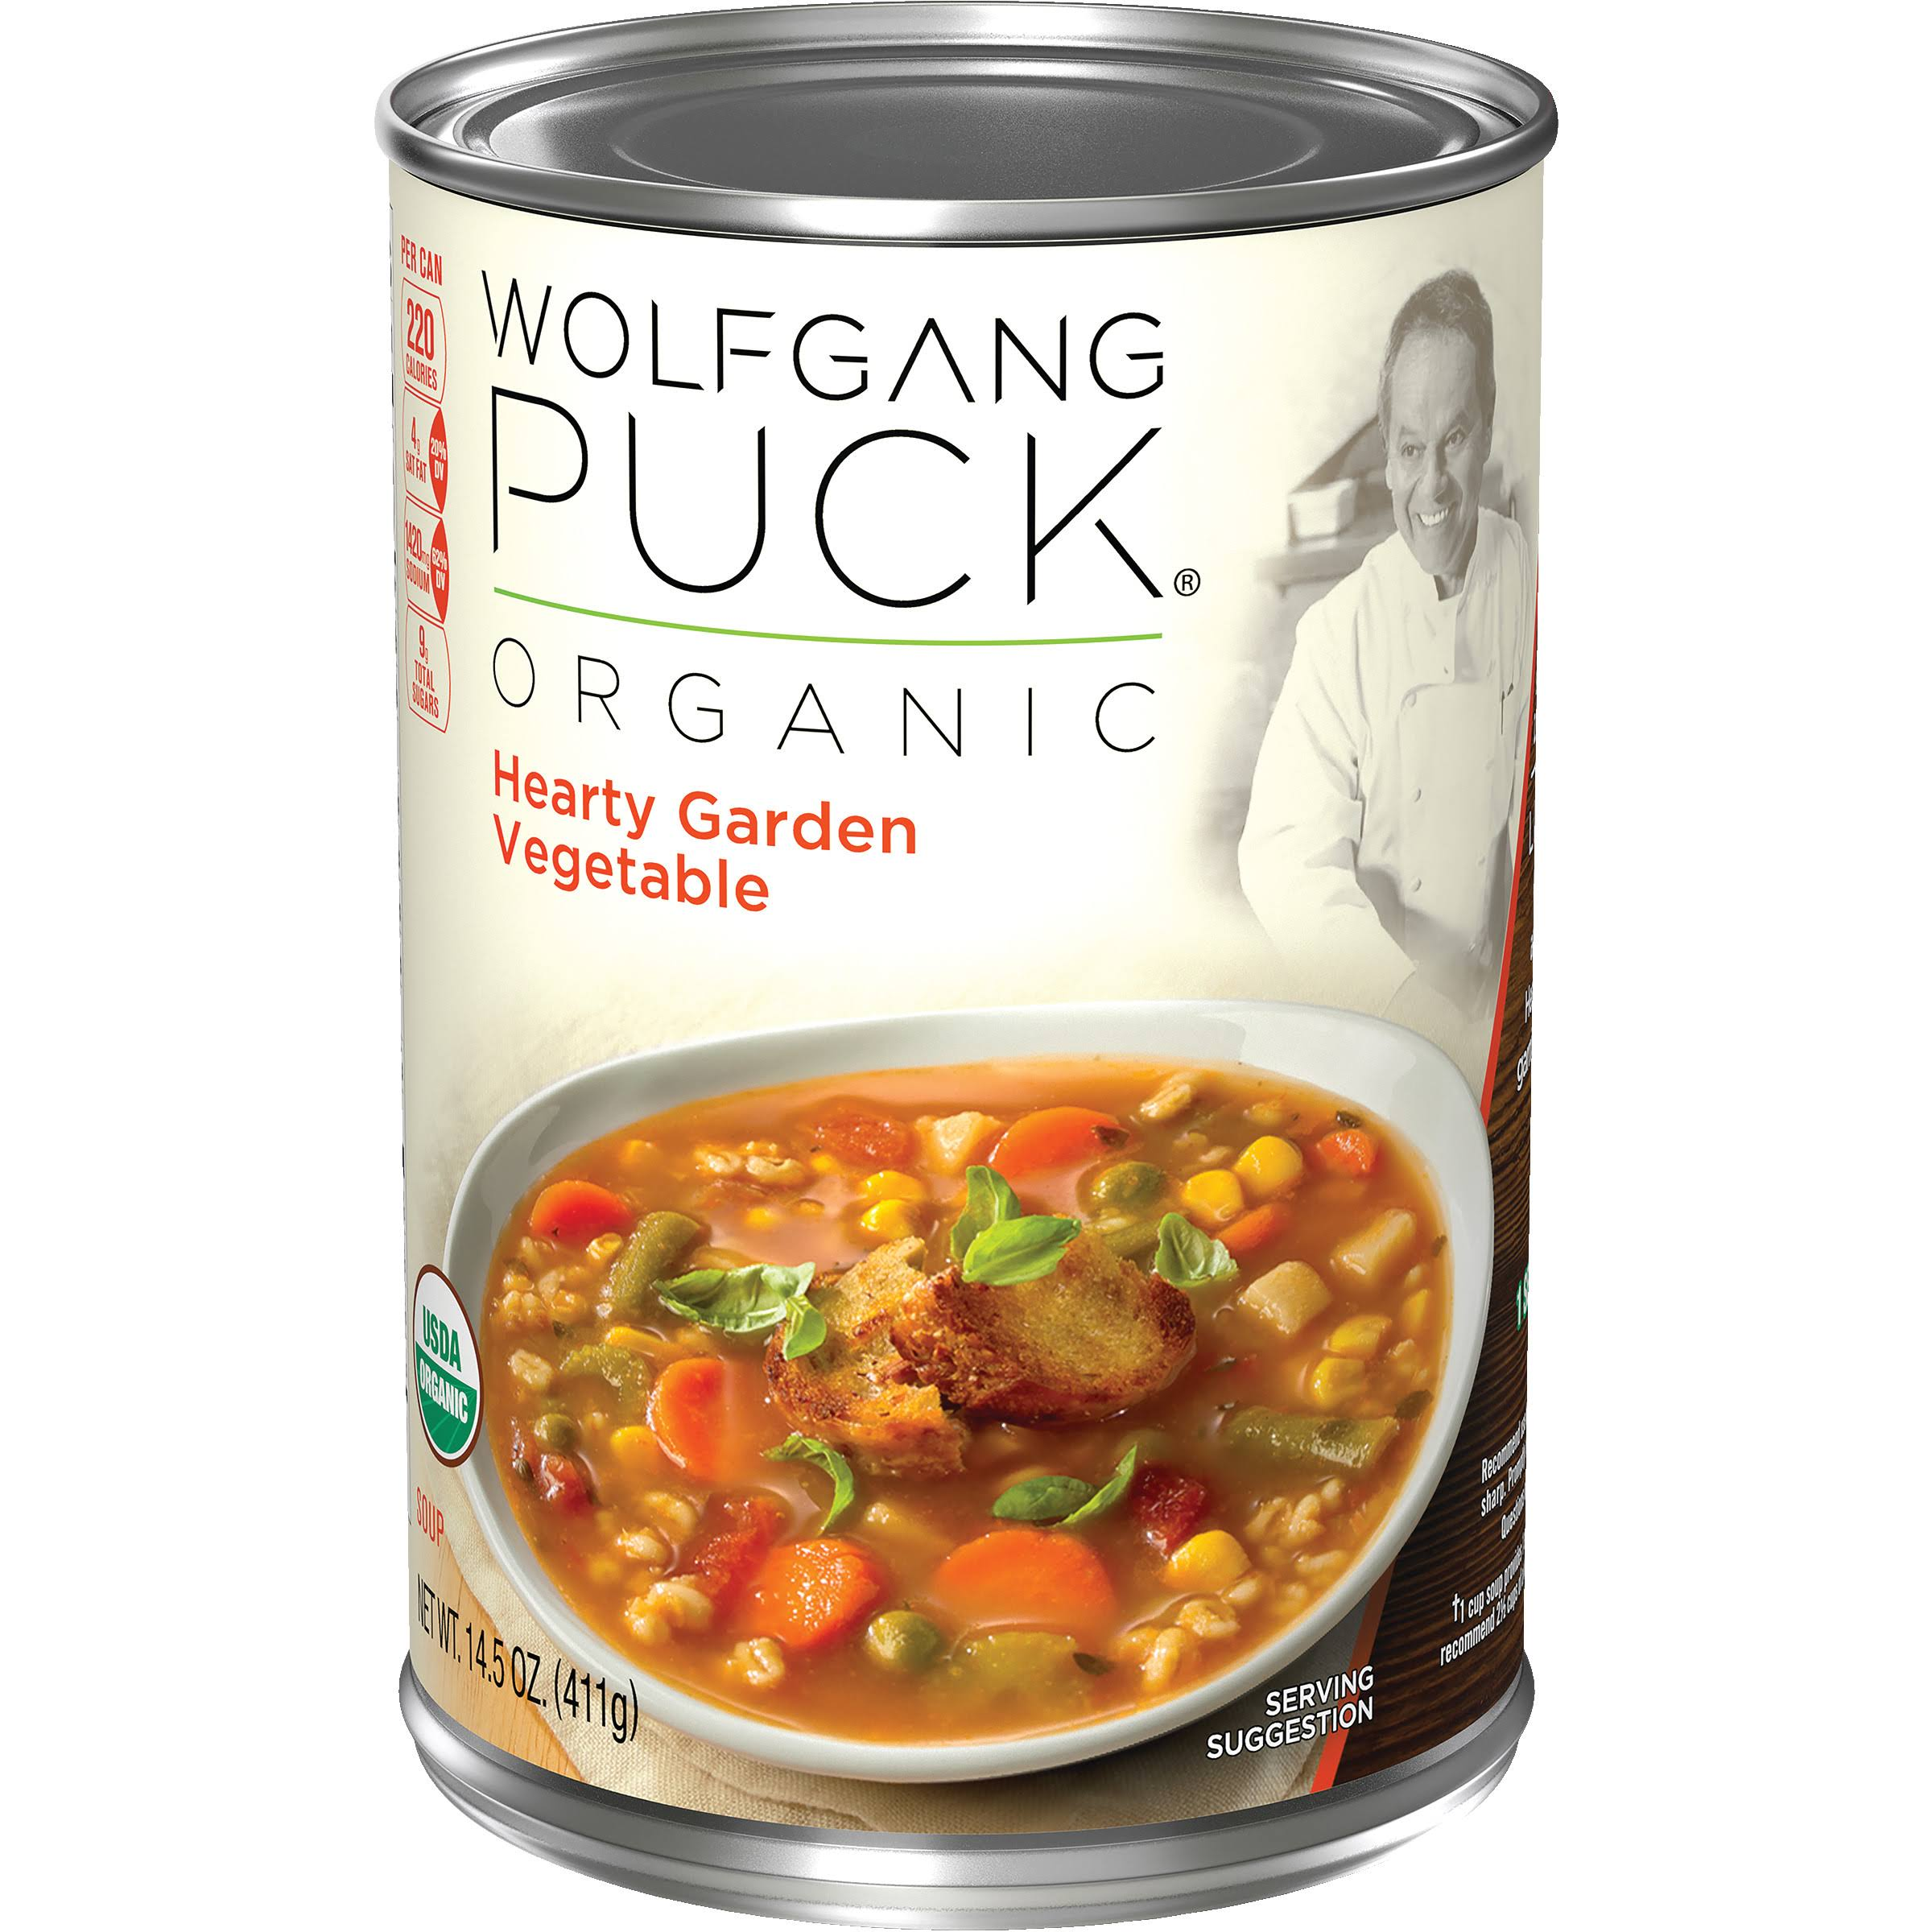 Wolfgang Puck Organic Hearty Garden Vegetable Soup - 14.5oz